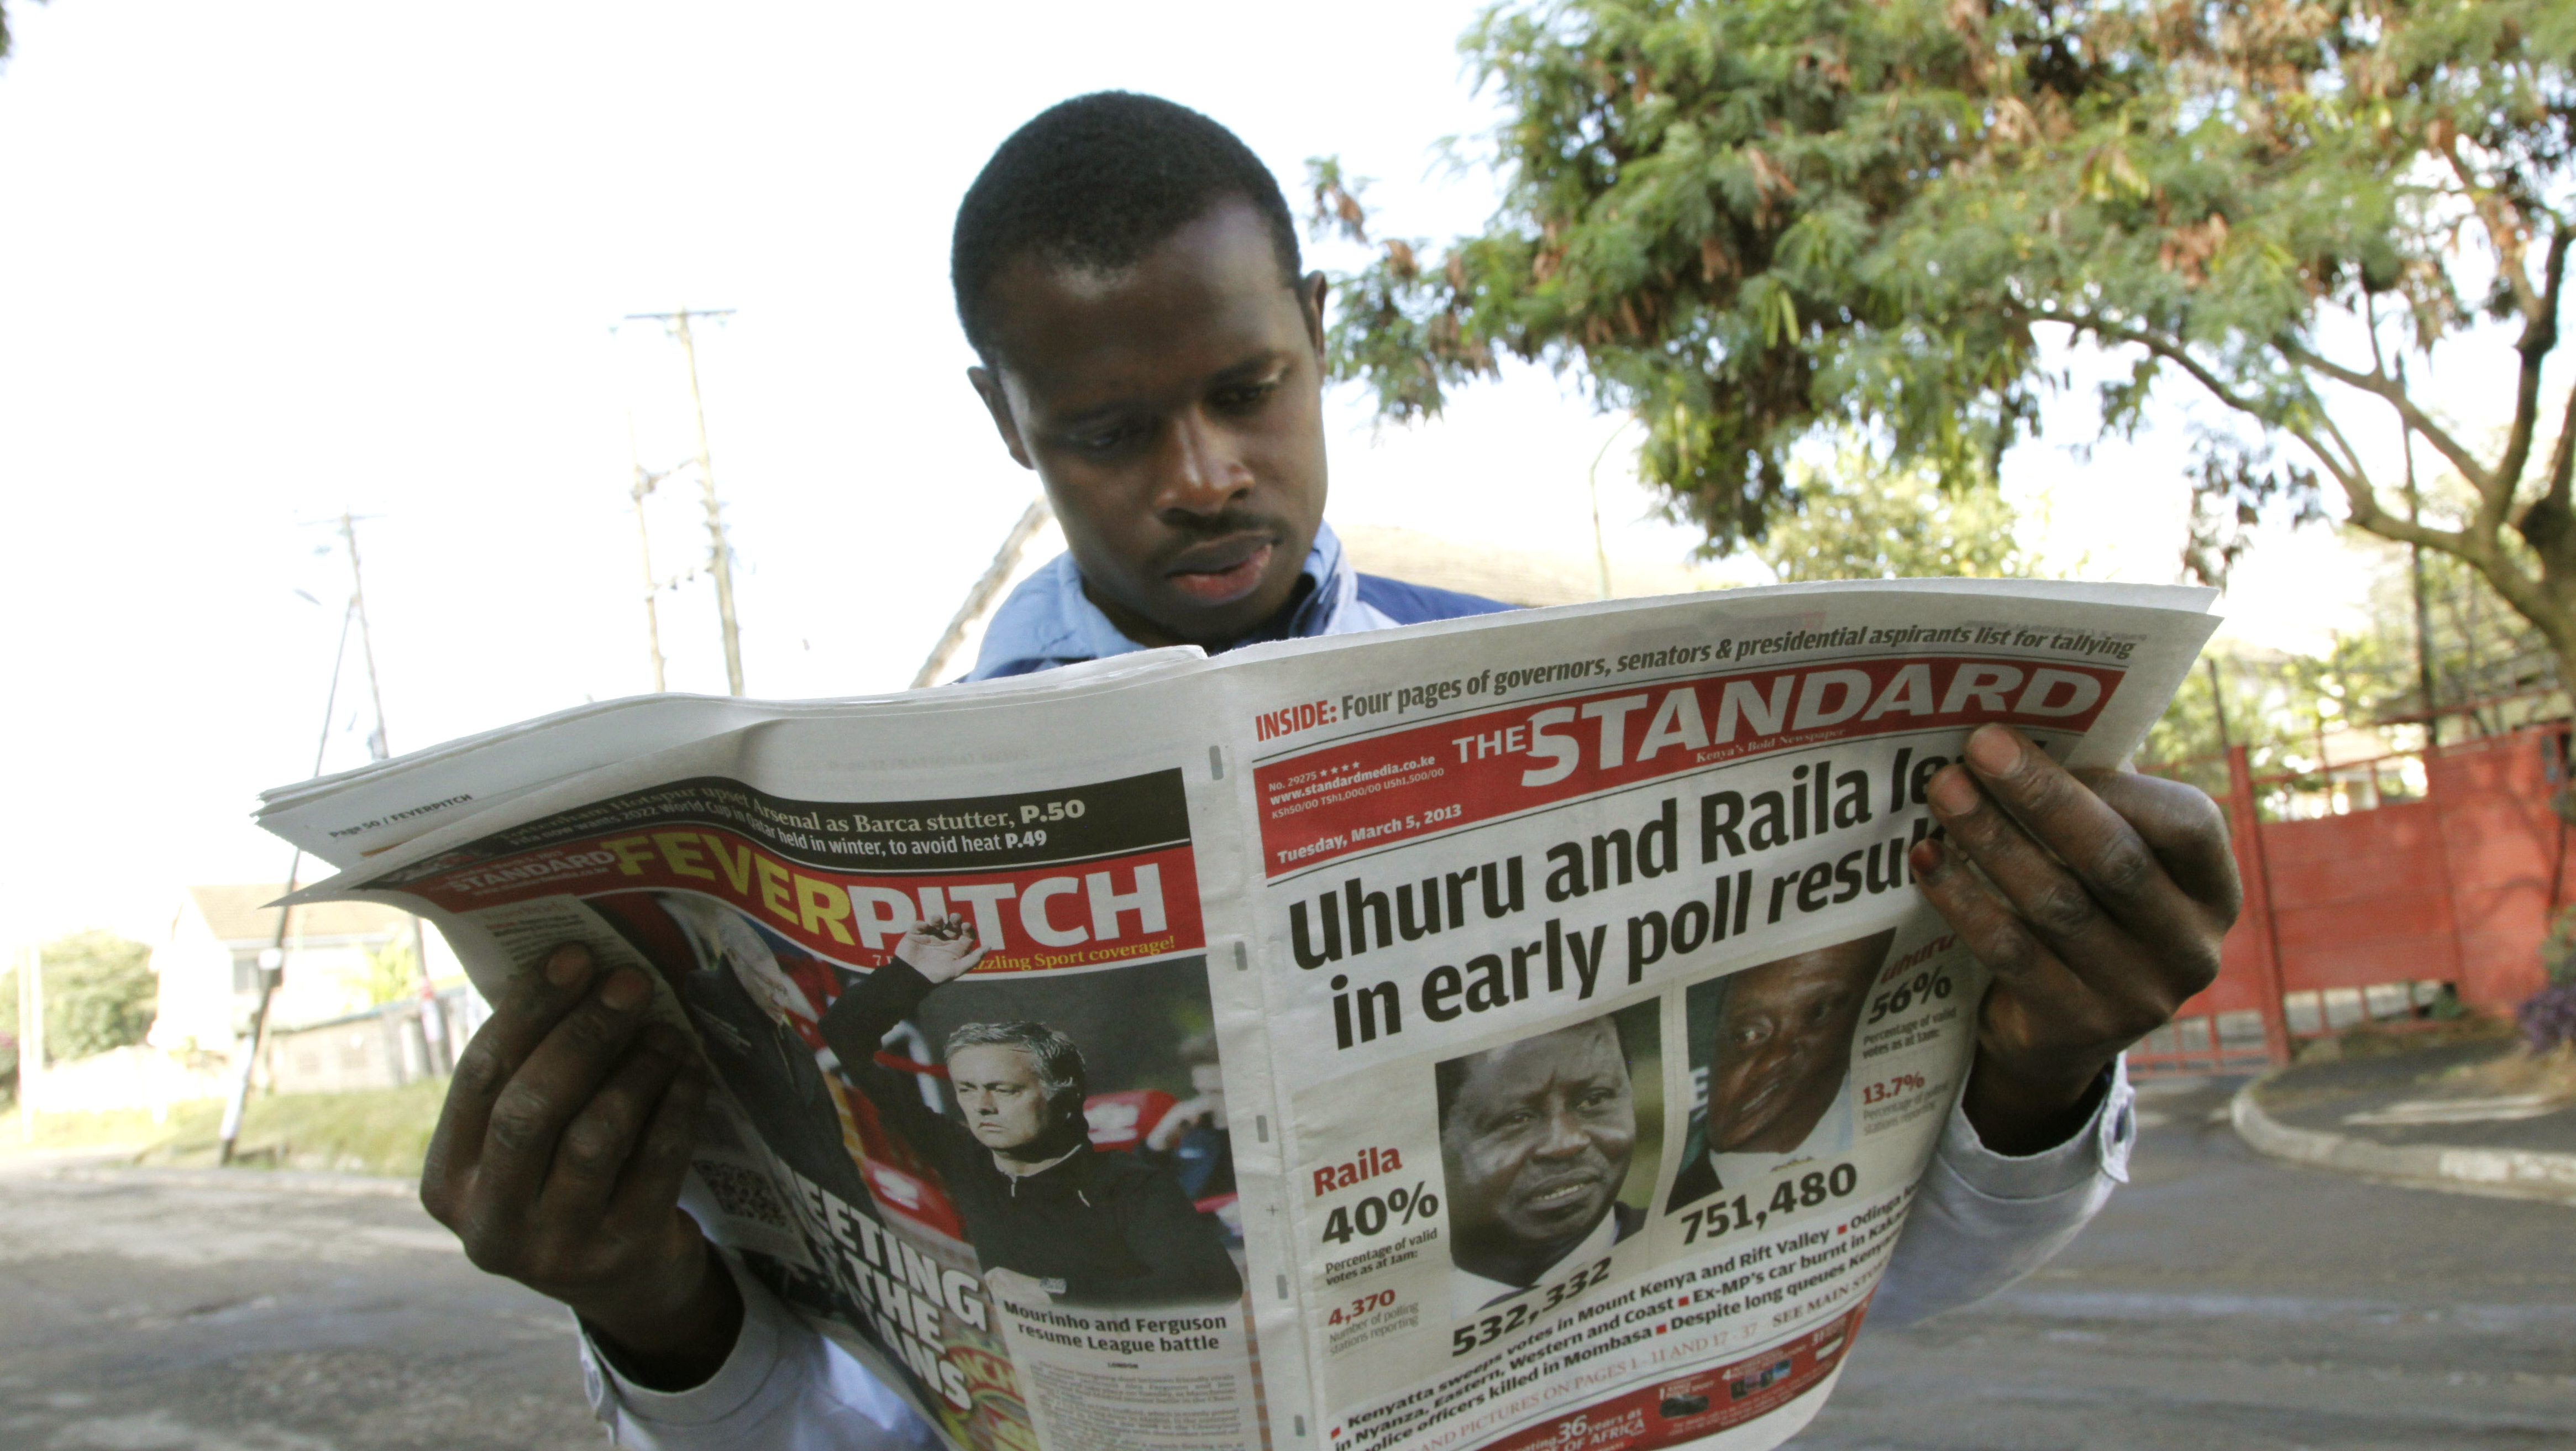 A Kenyan looks at a newspaper a day after the country's presidential election, at a roadside stall in Nairobi, Kenya Tuesday, March 5, 2013. Kenya's presidential election drew millions of eager voters who endured long lines to cast ballots Monday, but the vote was marred by violence that left 19 people dead, including four policemen hacked to death by machete-wielding separatists.